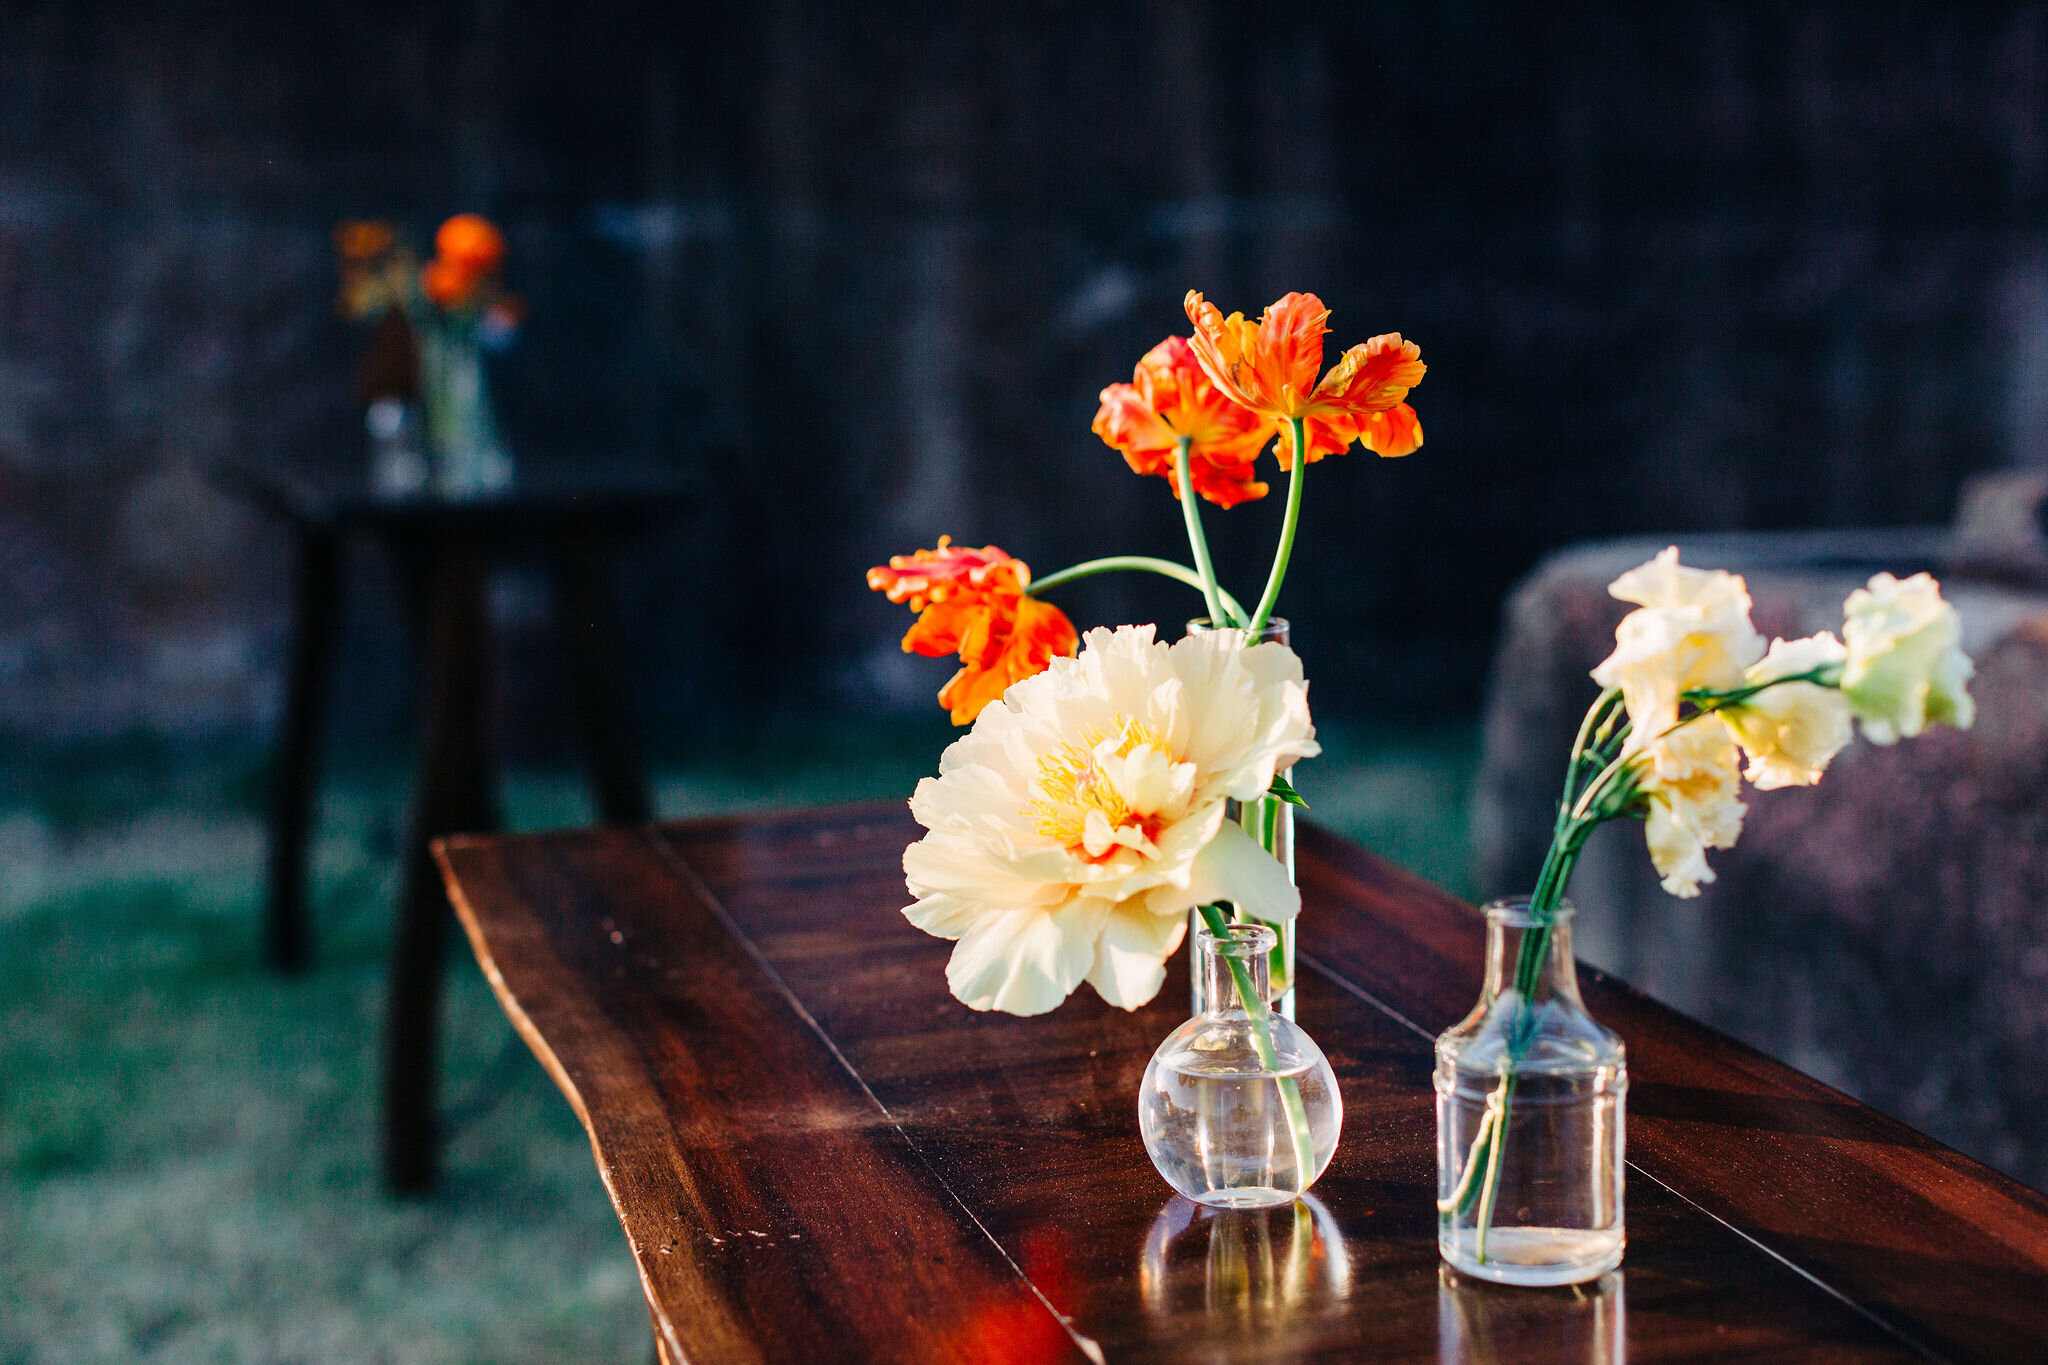 Simple bud vases with yellow peonies and orange ranunculus. Nashville event floral design.